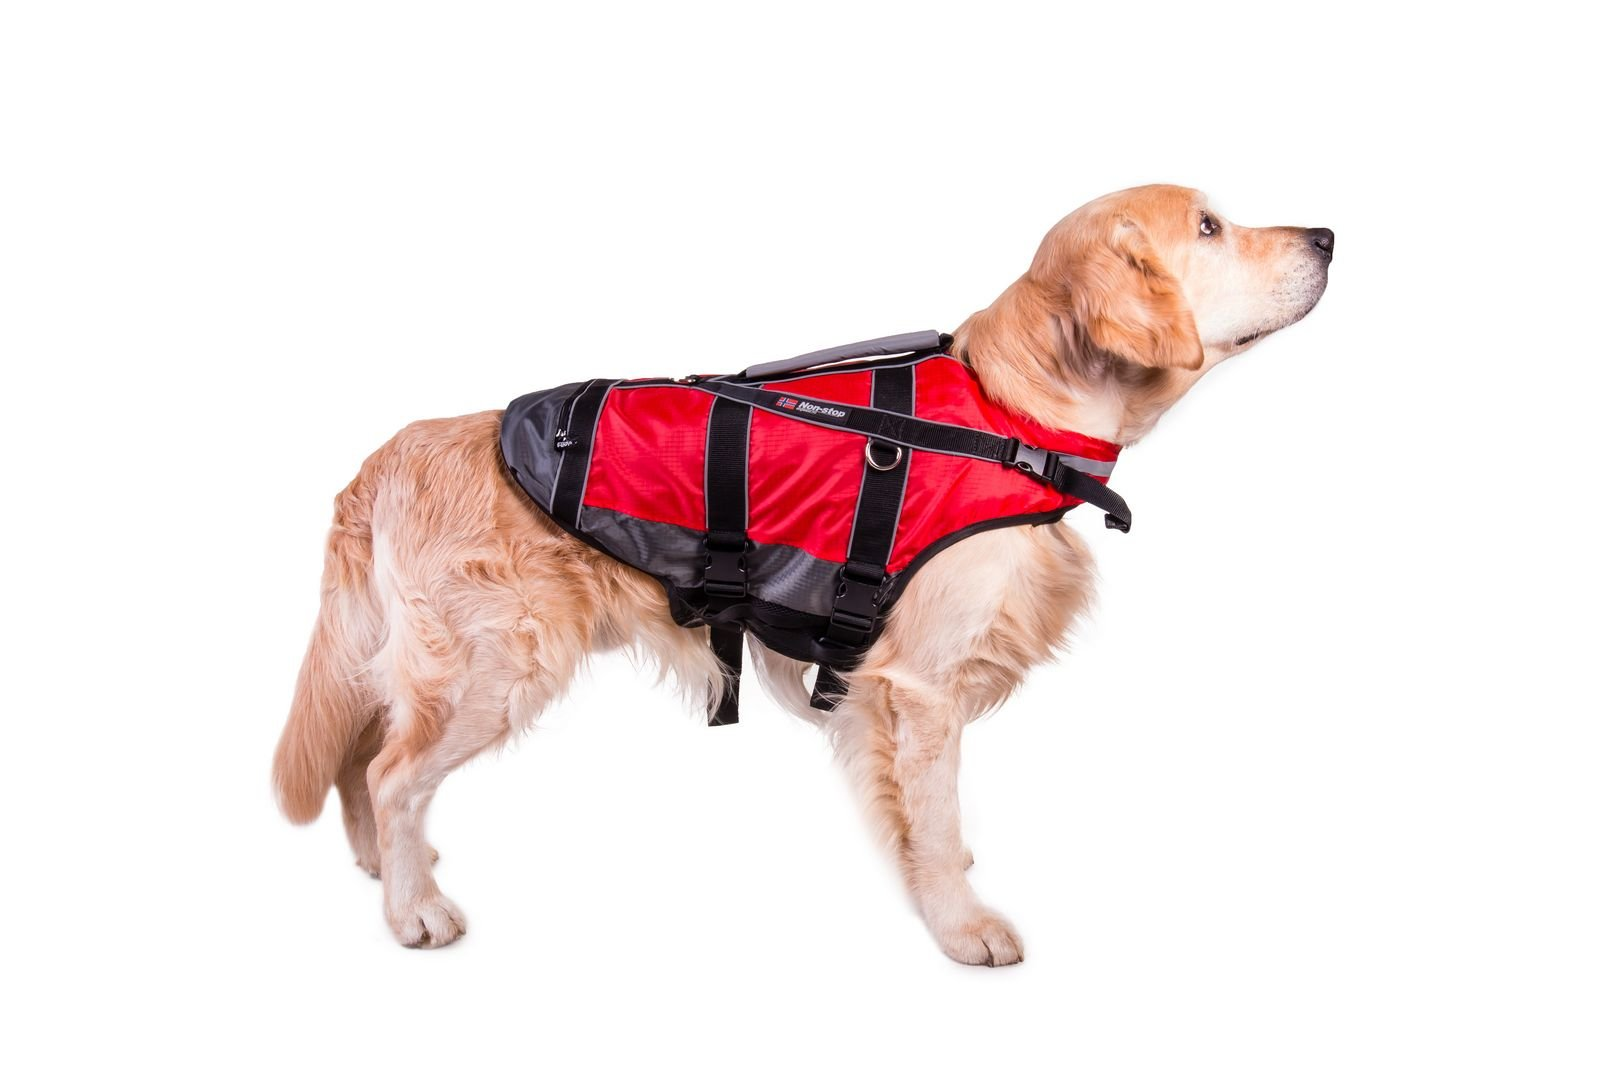 Non-stop dogwear ''Safe Life Flotation Vest Jacket With Professional Human Grade Material & Safety Handle (XL) by Non-stop dogwear